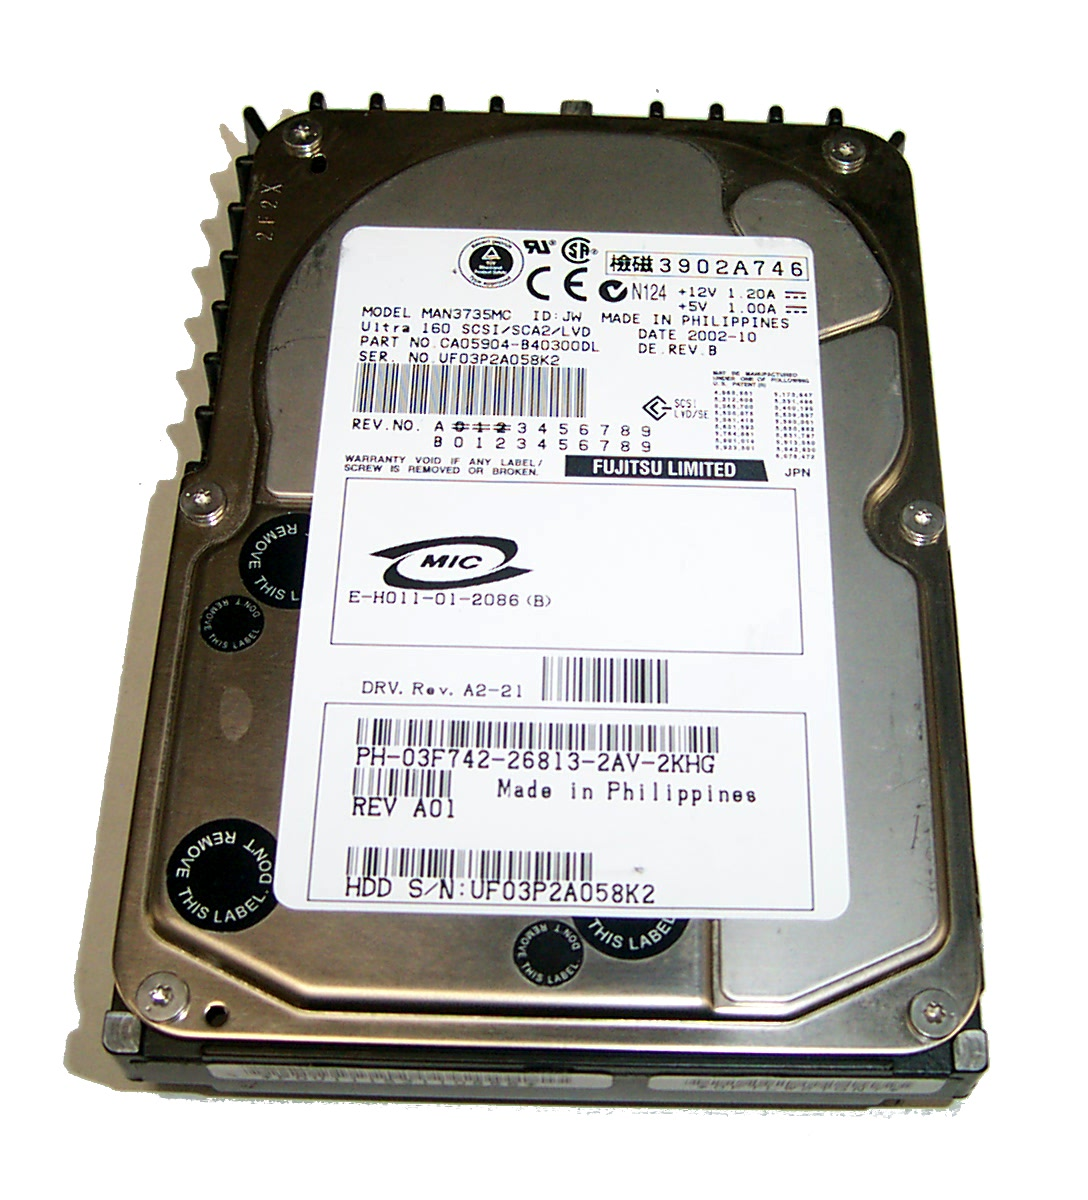 "Dell 3F742 73GB 10K Ultra 160 SCSI/SCA2 3.5"" Hard Disk Drive- Fujitsu MAN3735MC"